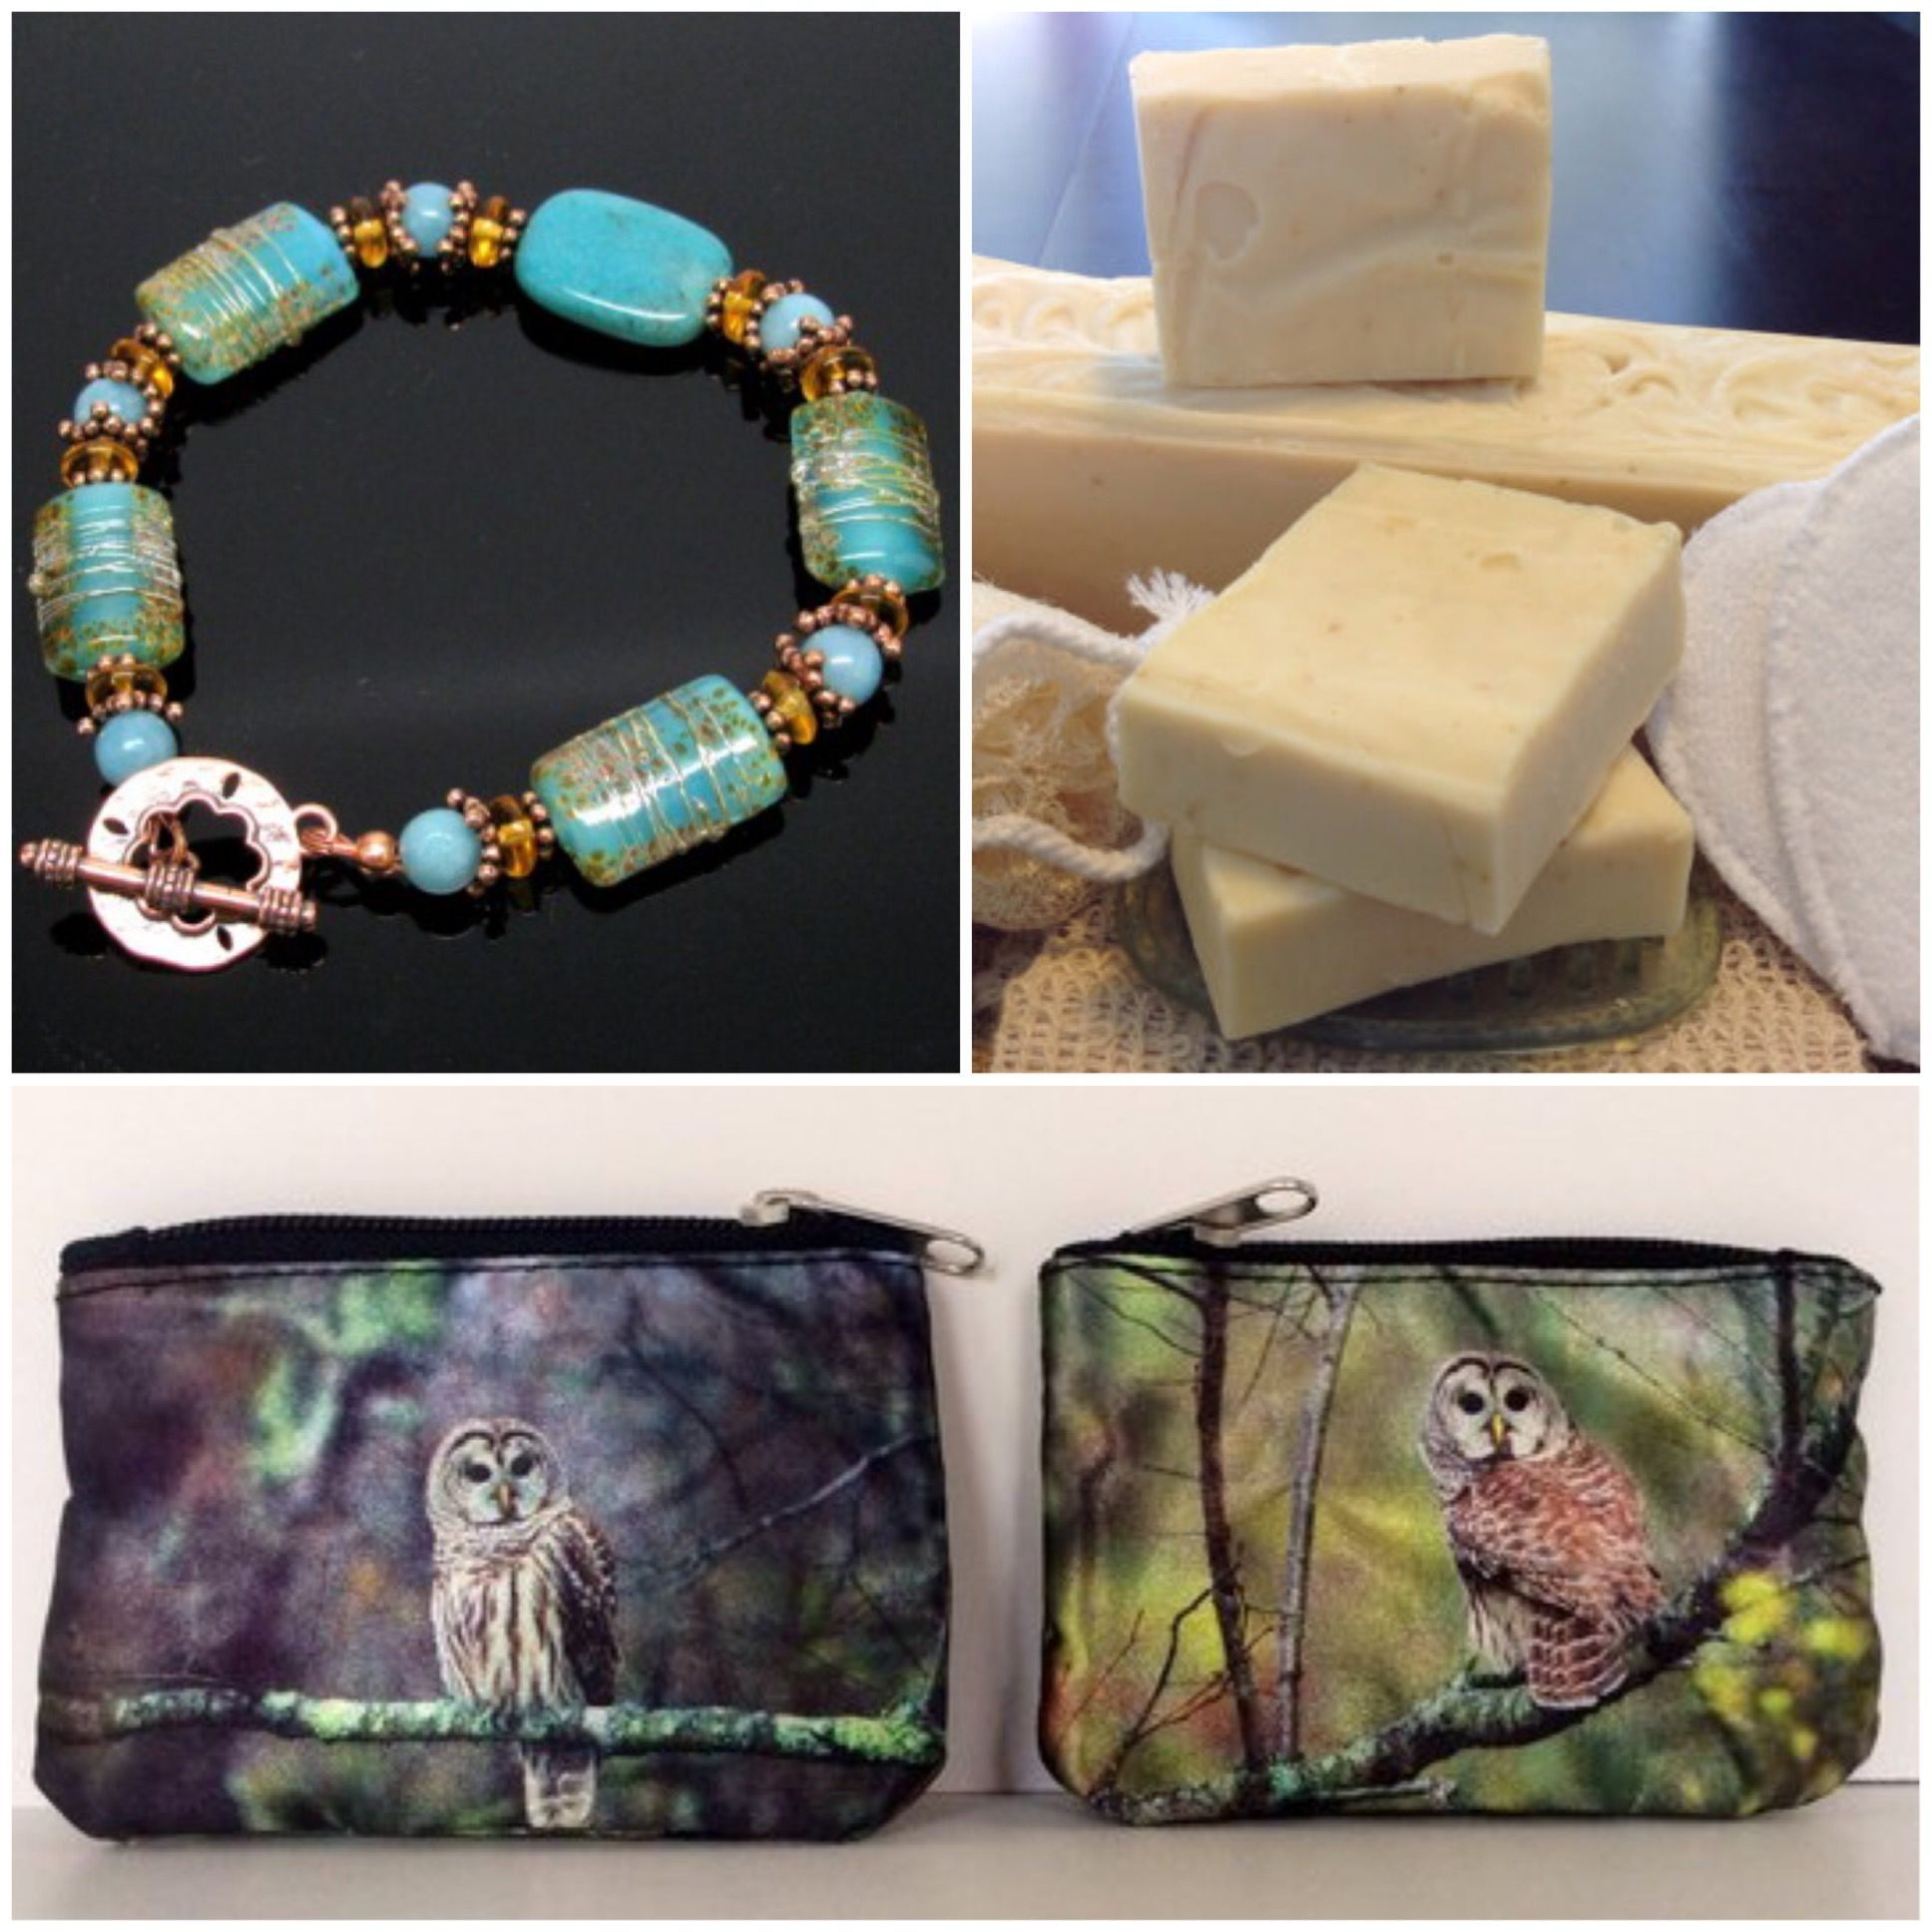 31+ Craft fairs this weekend in new hampshire ideas